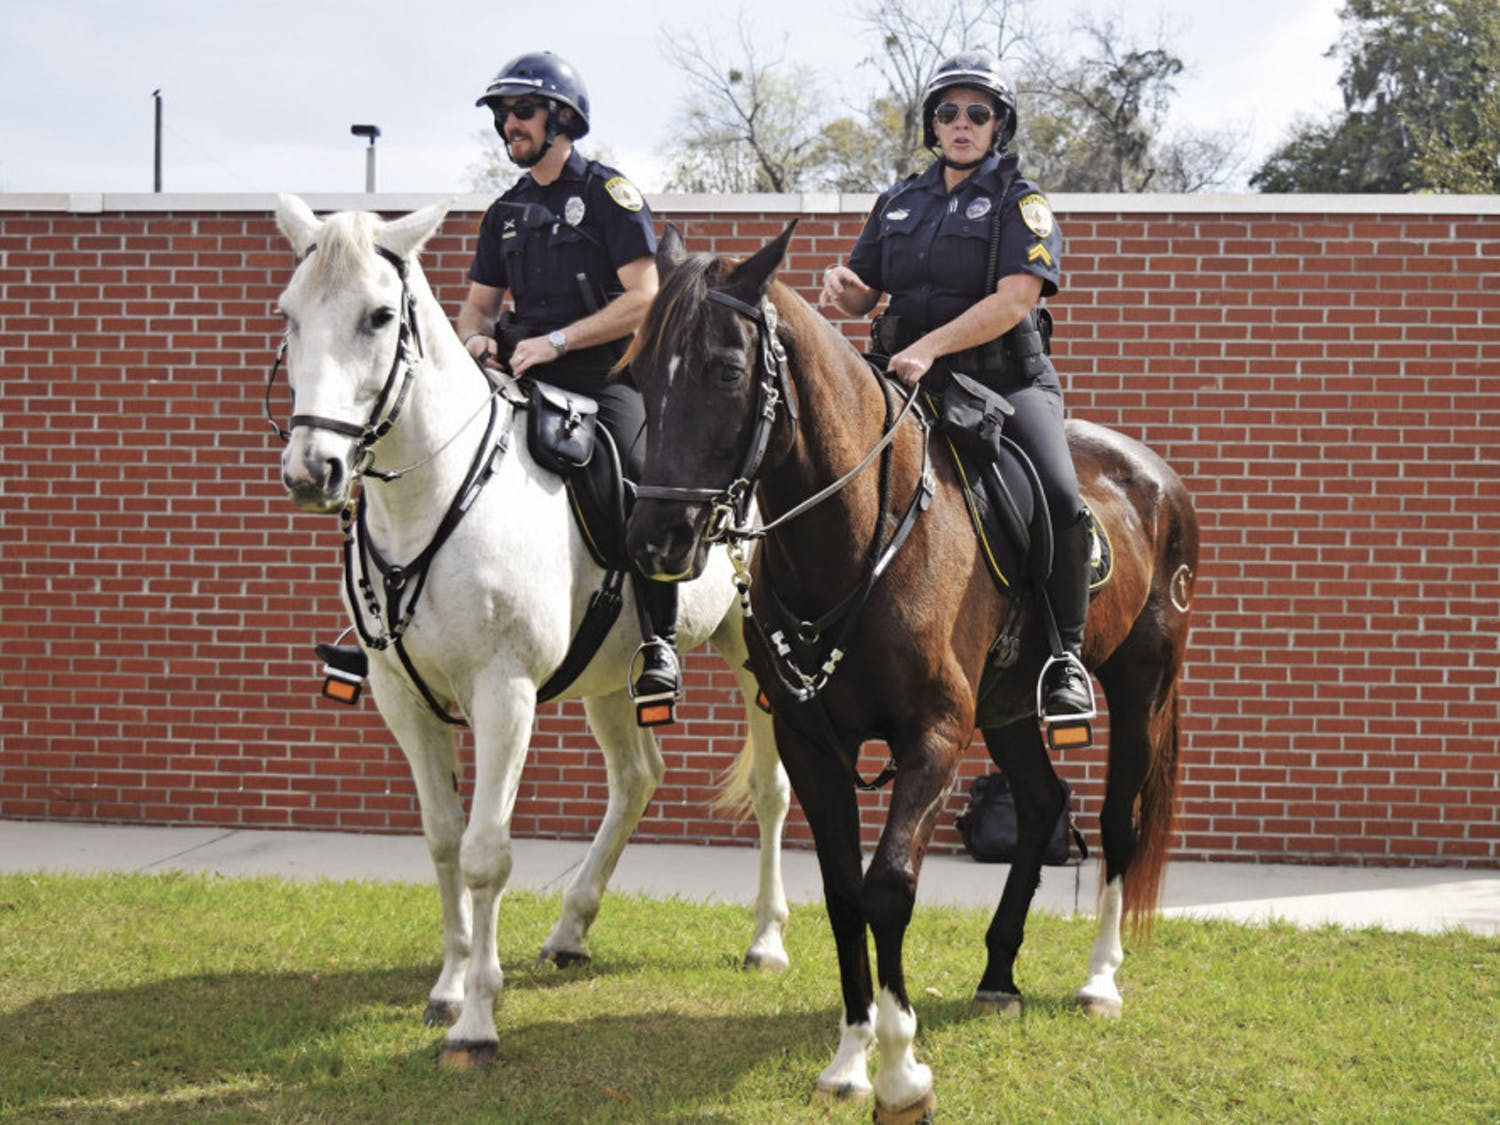 From left: Officer Ryan Foster rides Merlin and Cpl. Tracy Fundenburg rides Zeus. The two horses have been working for Gainesville Police's mounted unit for about 10 years. On Tuesday, the horses retired.